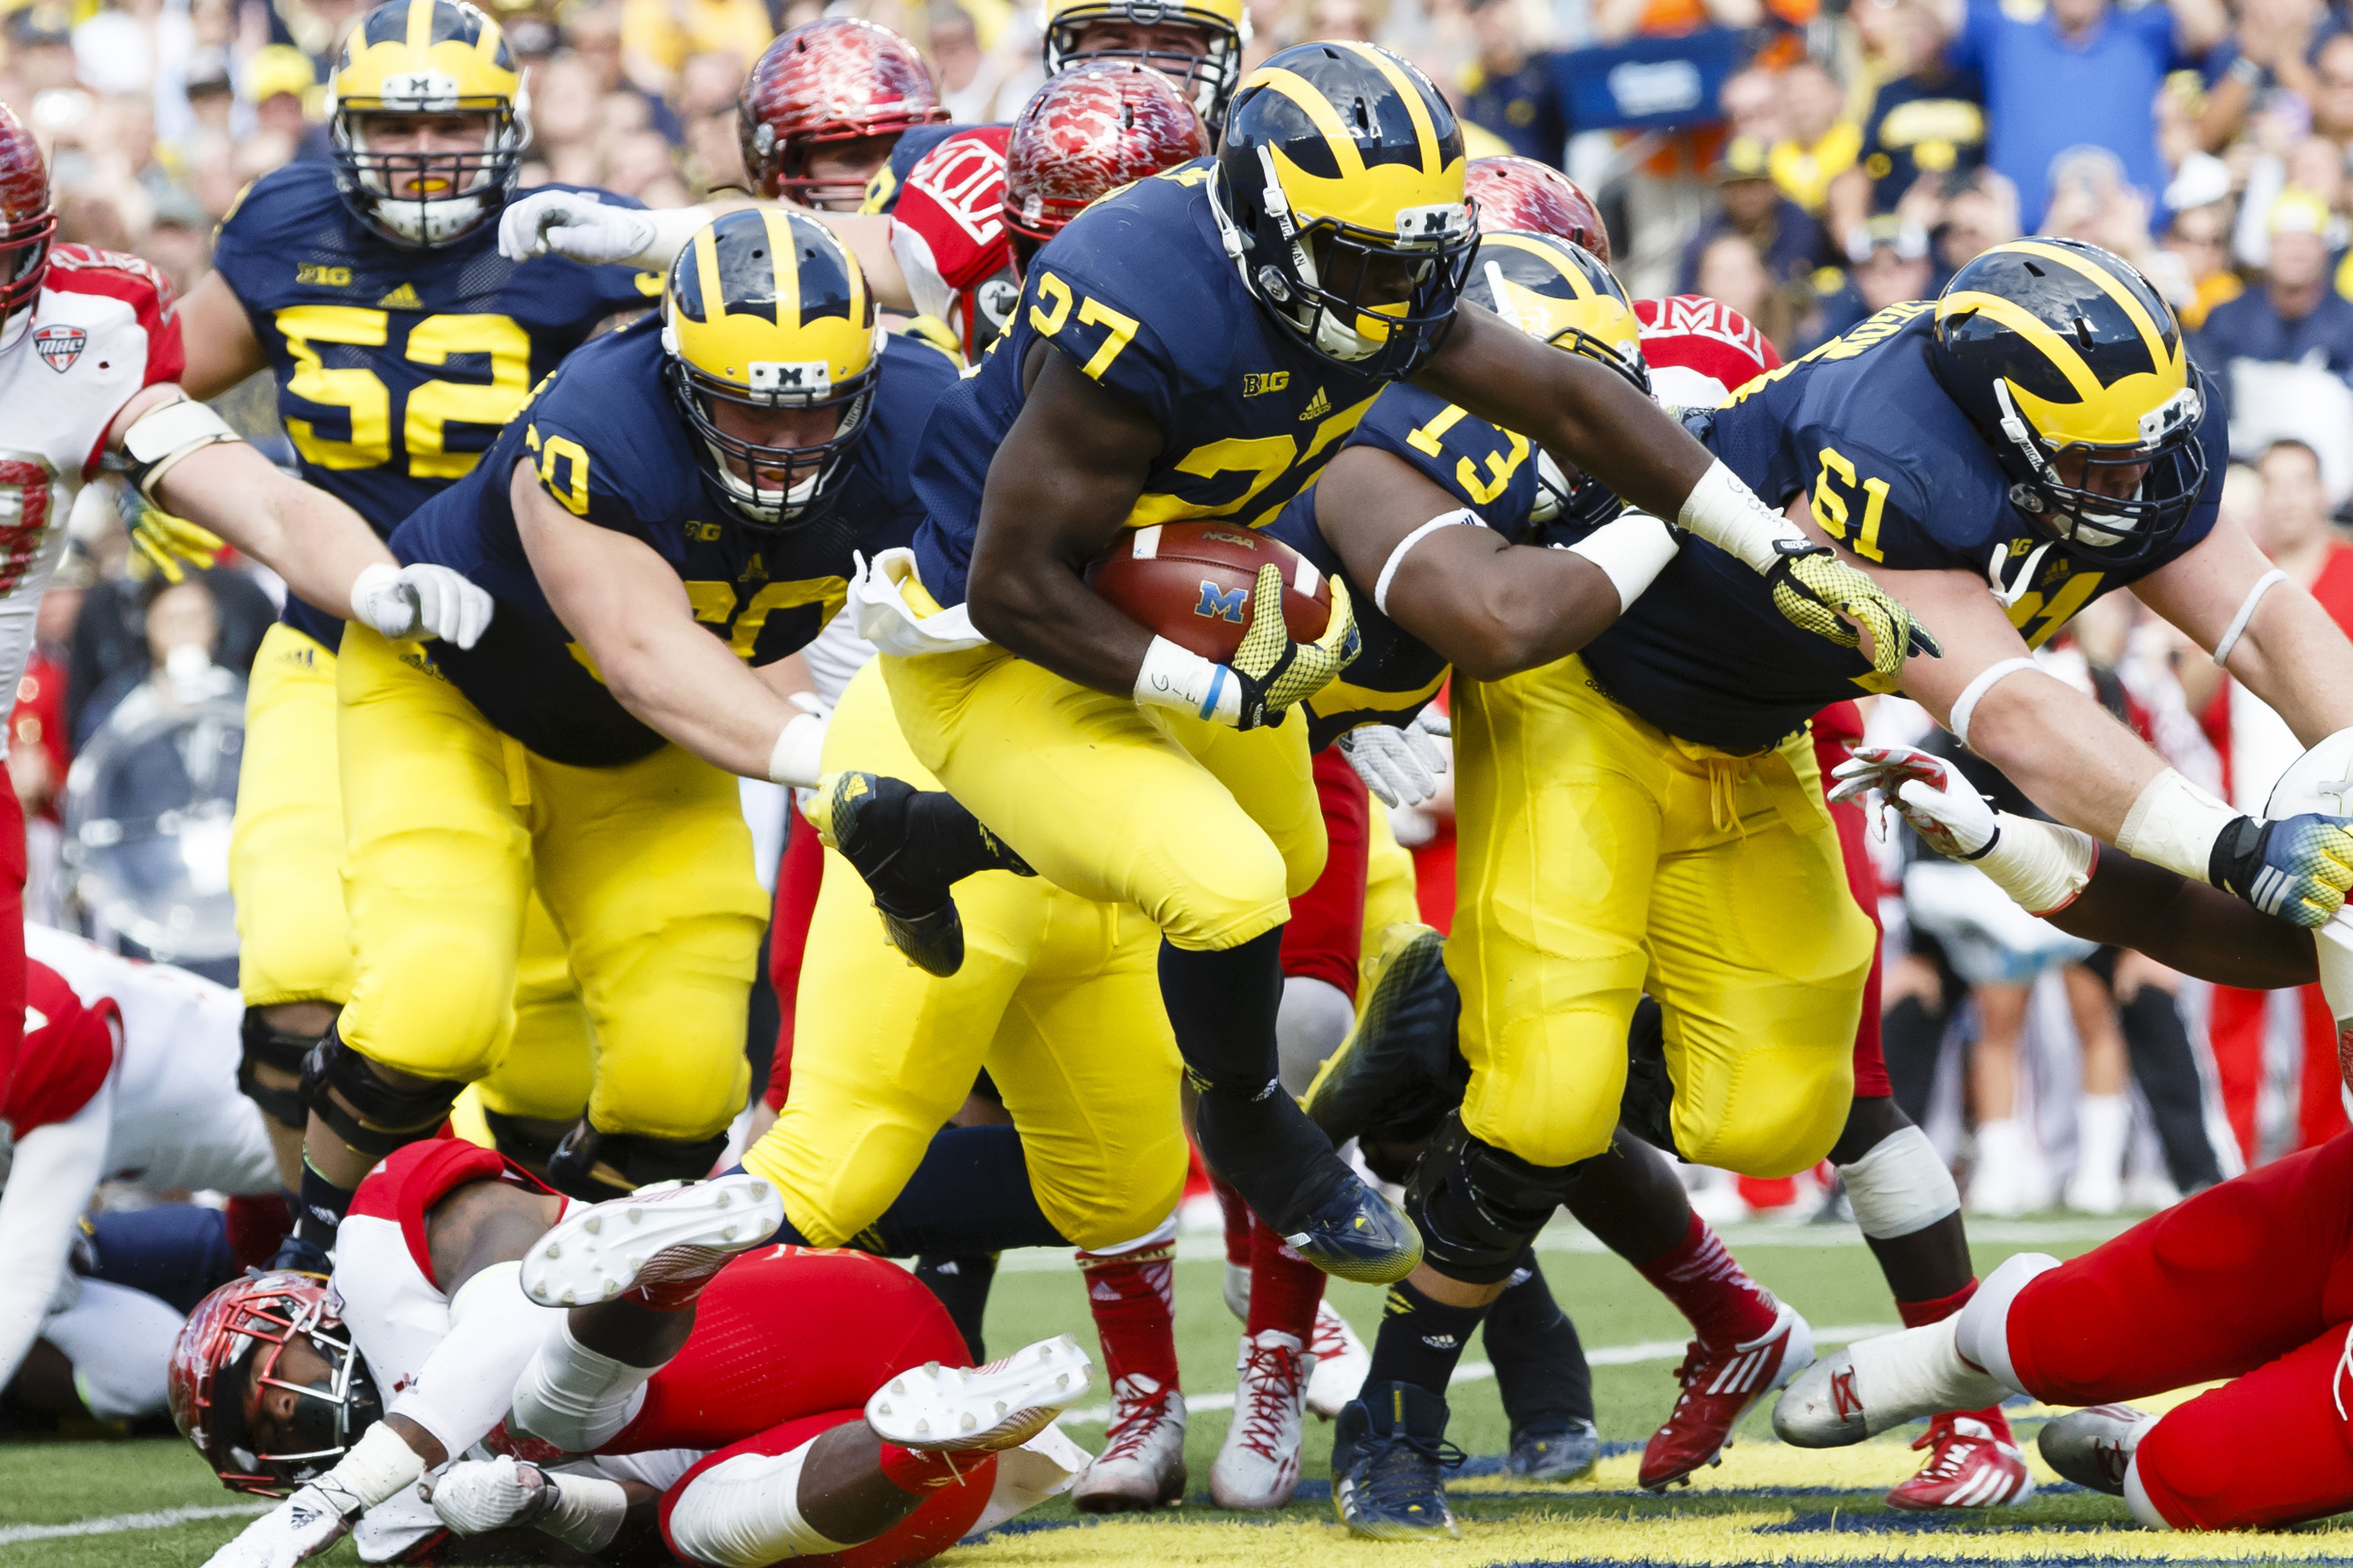 Jim Harbaugh's almost a sure thing, but Michigan's 2015 could go 2 ways